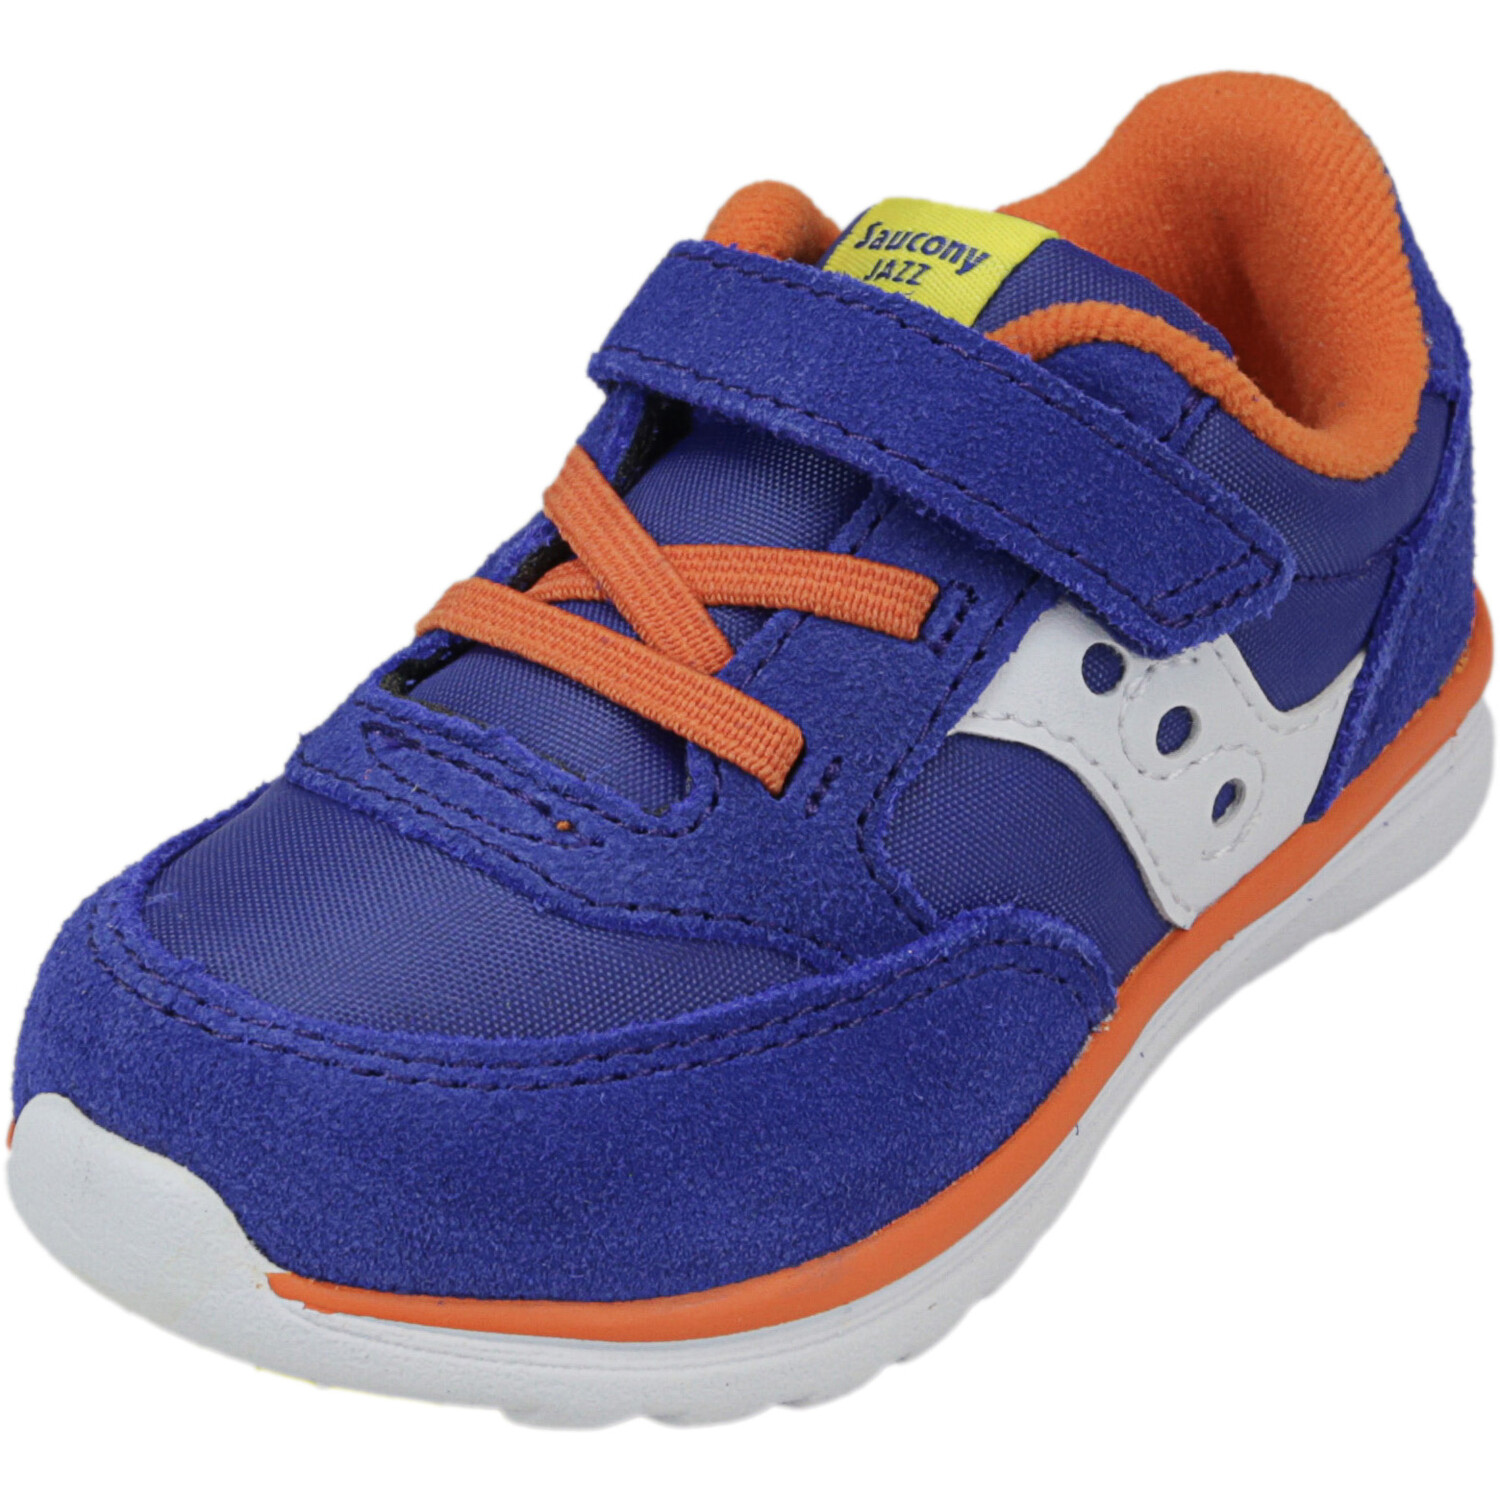 Saucony Boy's Jazz Lite Blue / Multi Ankle-High Suede Sneaker - 6M